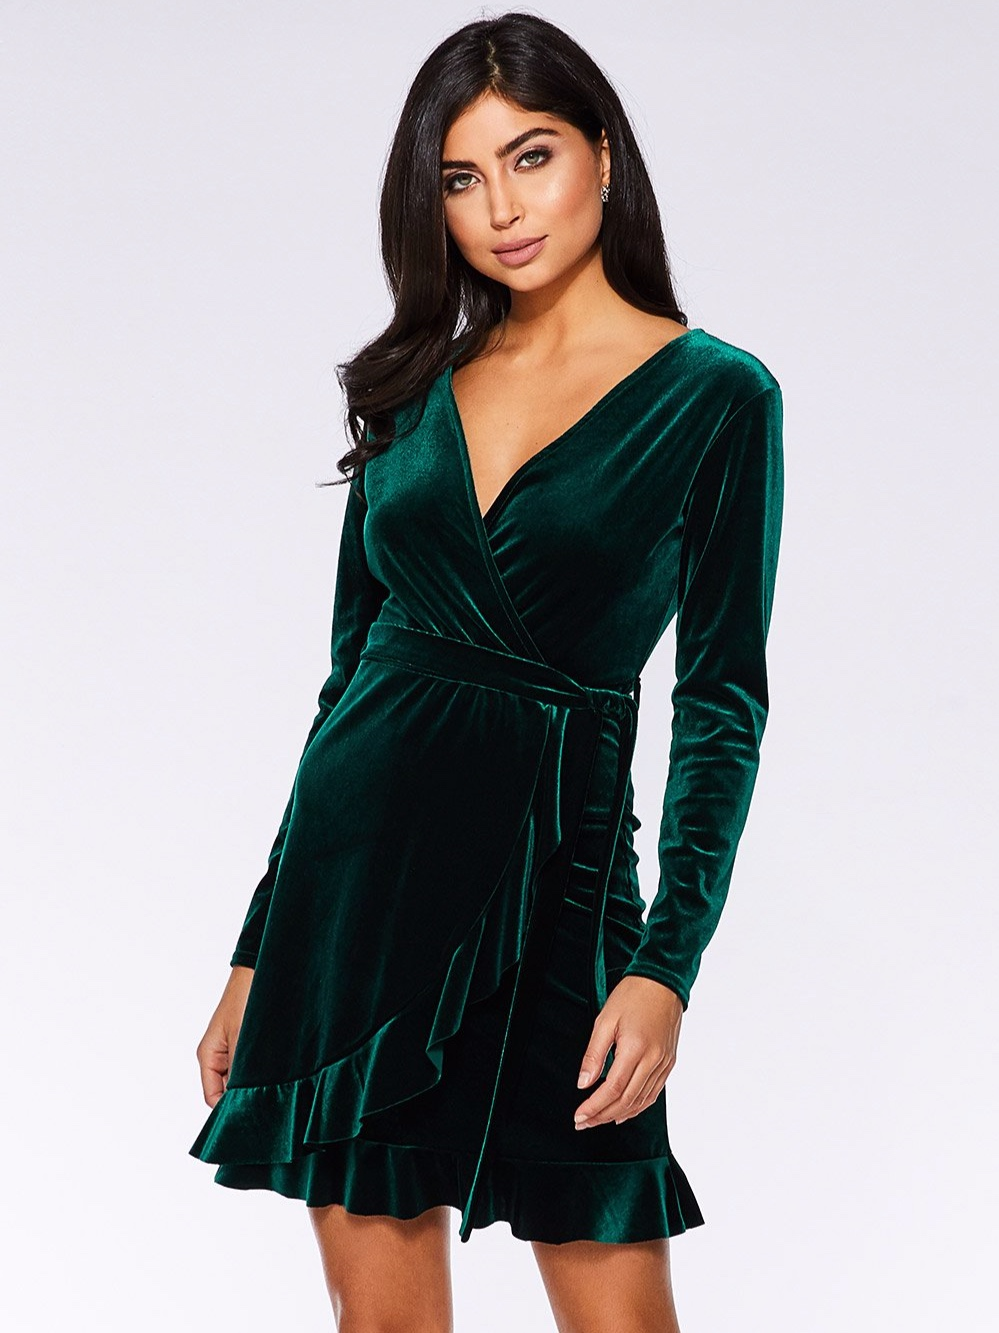 Bottle Green Velvet Wrap Long Sleeve Dress (£36.99)